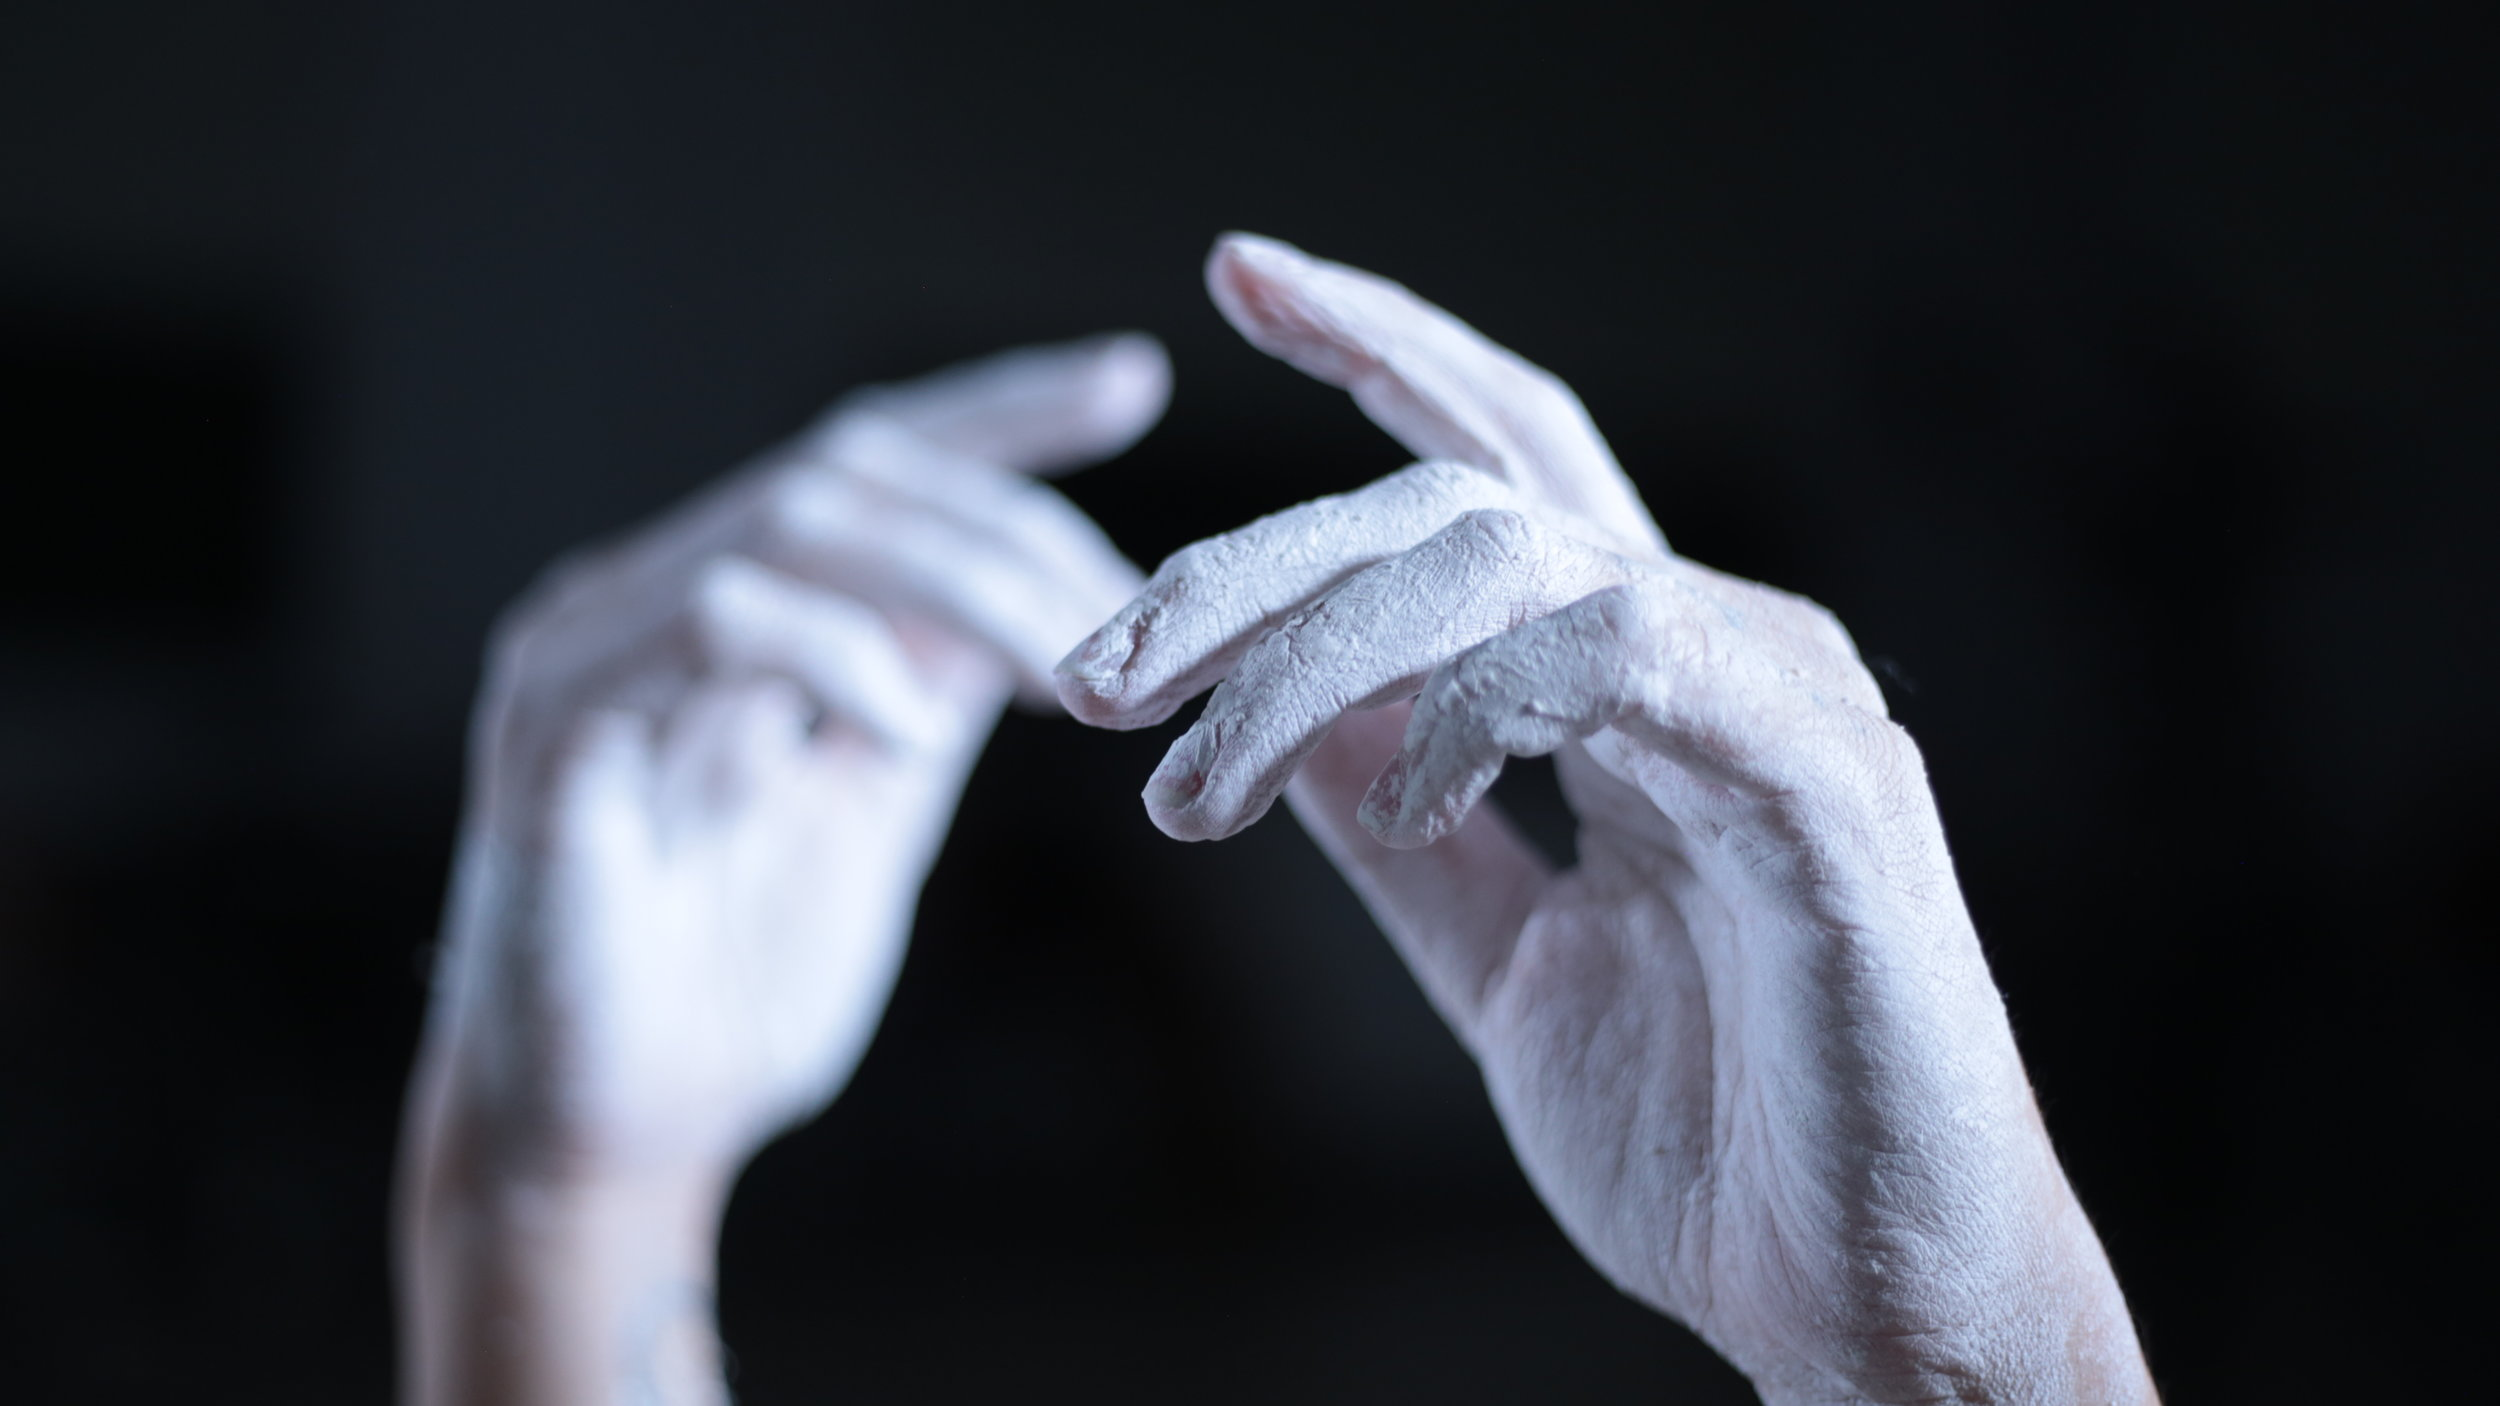 HANDS IN THE PROJECT